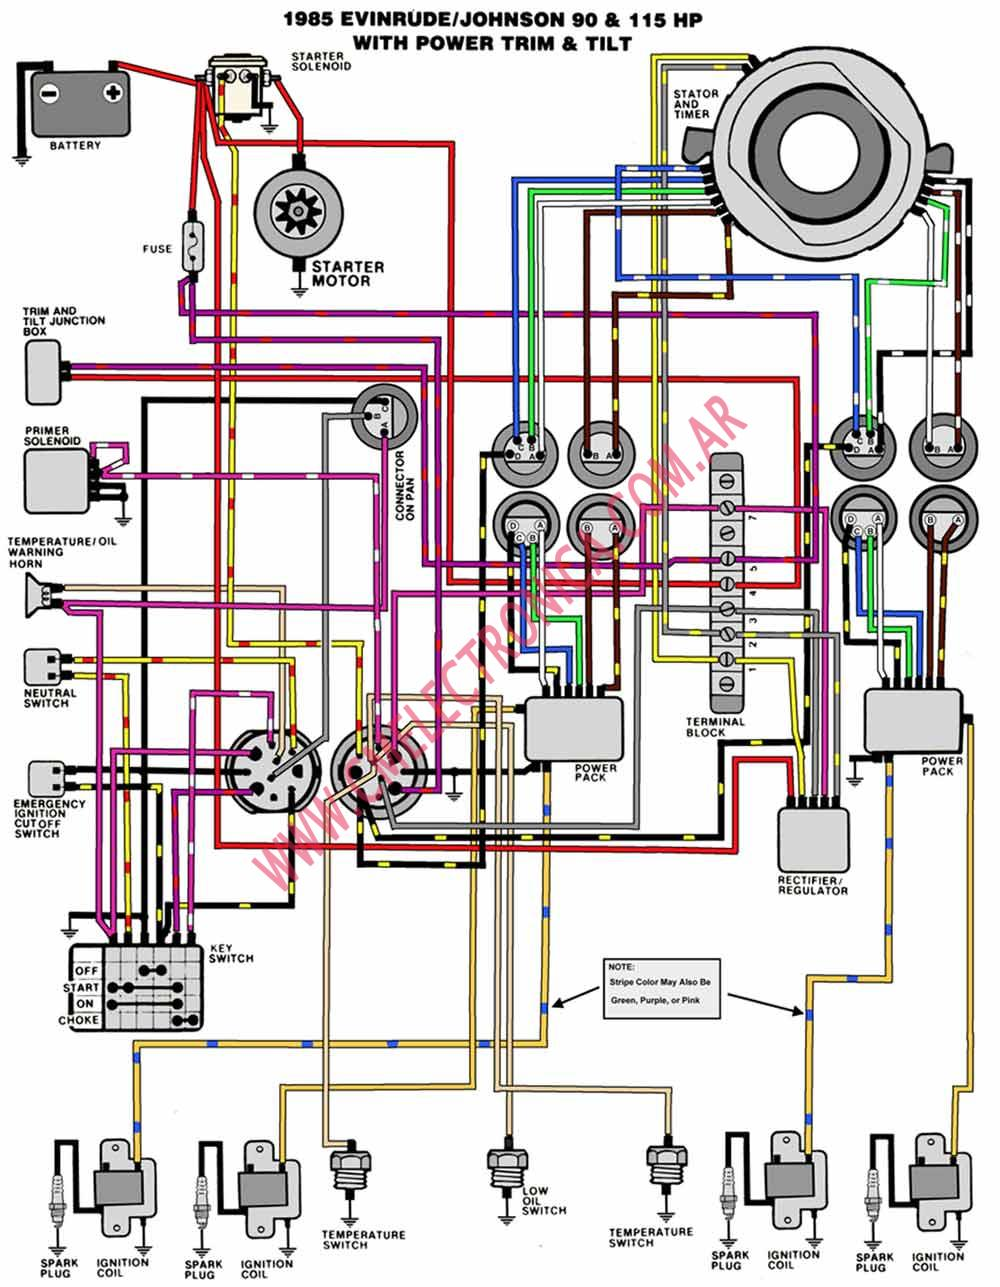 115 hp evinrude wiring harness diagram wiring diagrams hubs 25 HP Evinrude Wiring Diagram 115 hp evinrude wiring harness diagram all wiring diagram data omc outboard wiring diagram 115 hp evinrude wiring harness diagram